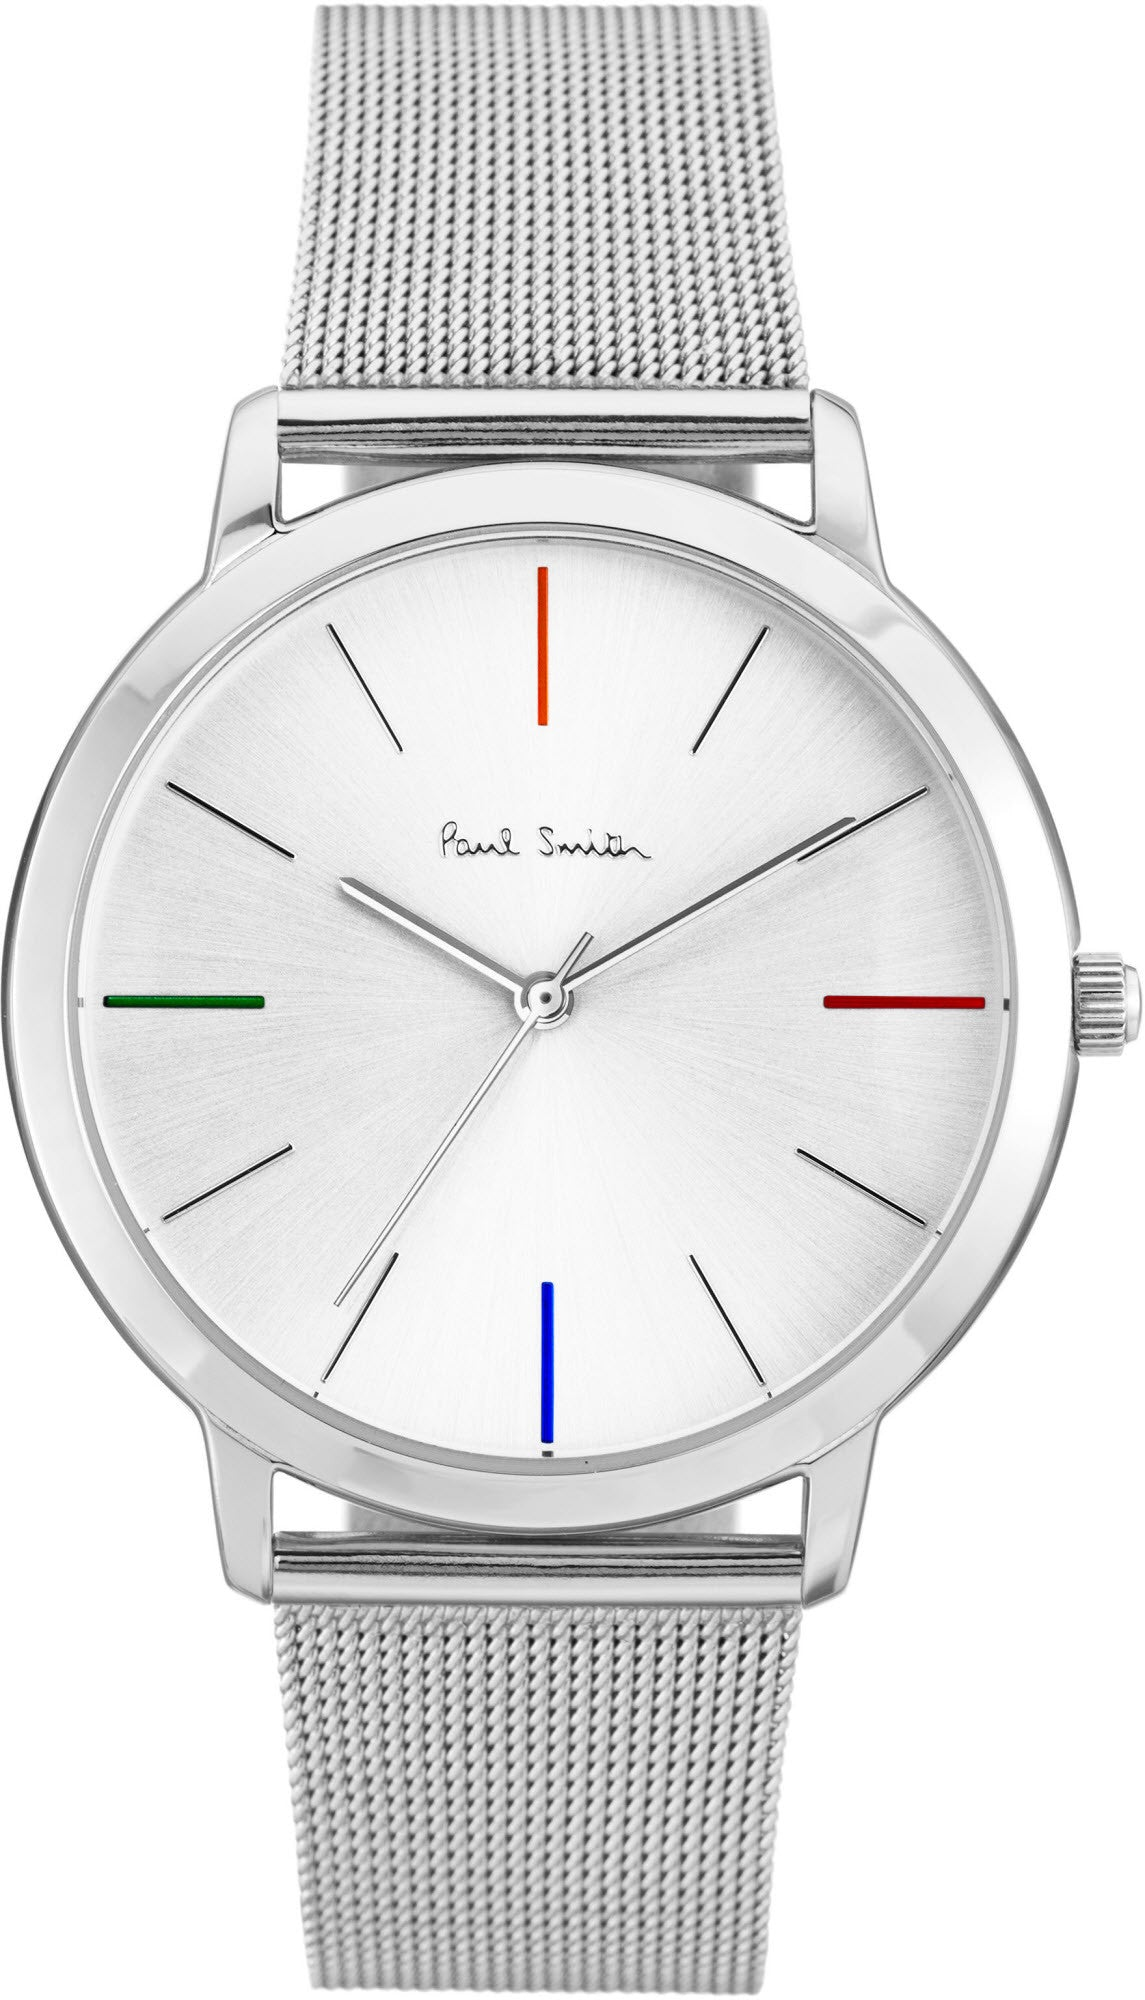 Paul Smith Watch MA